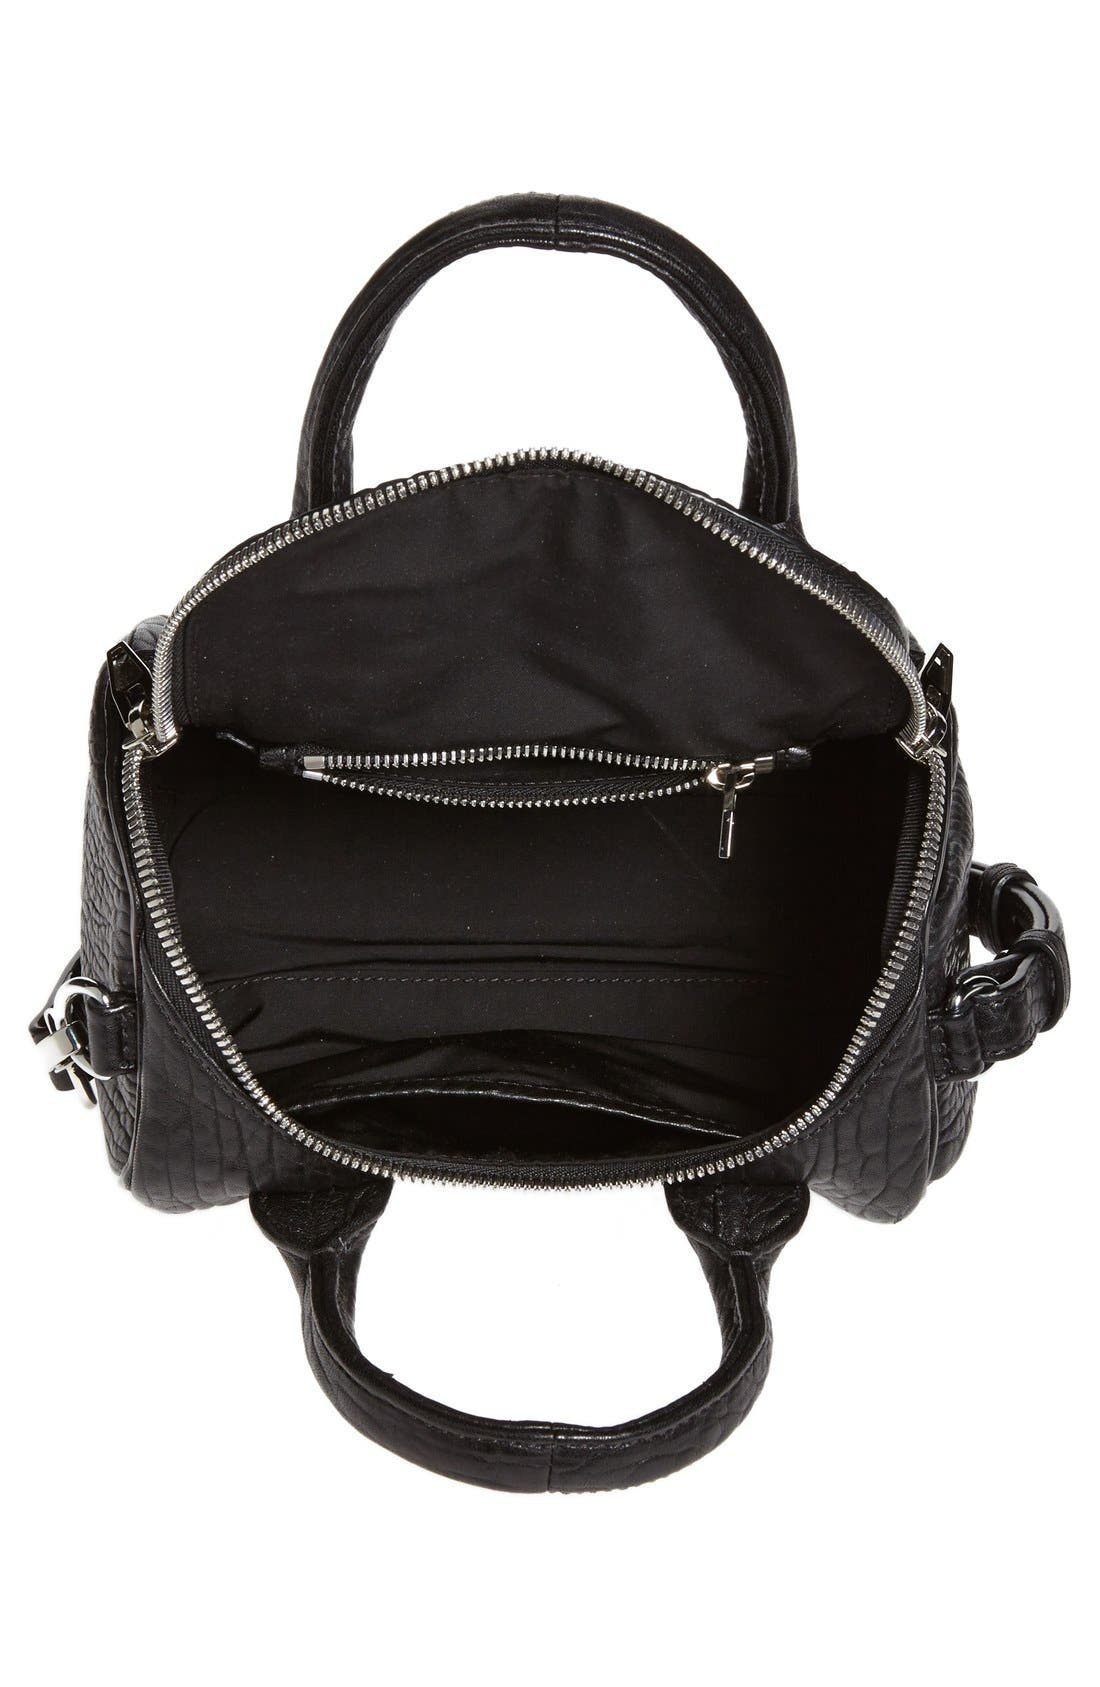 'Mini Rockie - Nickel' Leather Crossbody Satchel,                             Alternate thumbnail 3, color,                             001